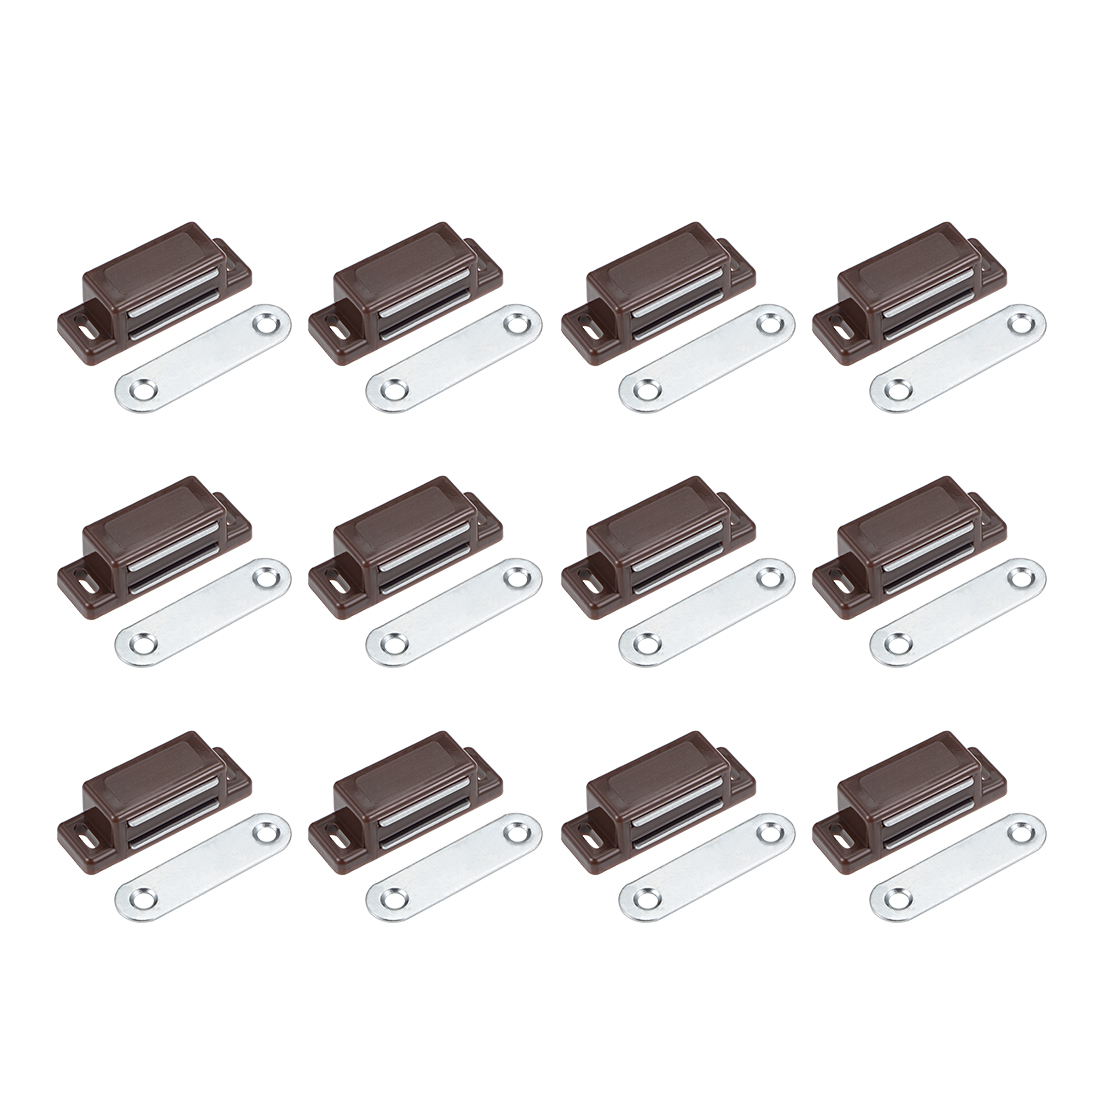 Cabinet Door Catch, Heavy-duty Magnetic Magnet Latch Cabinet Catches 12pcs